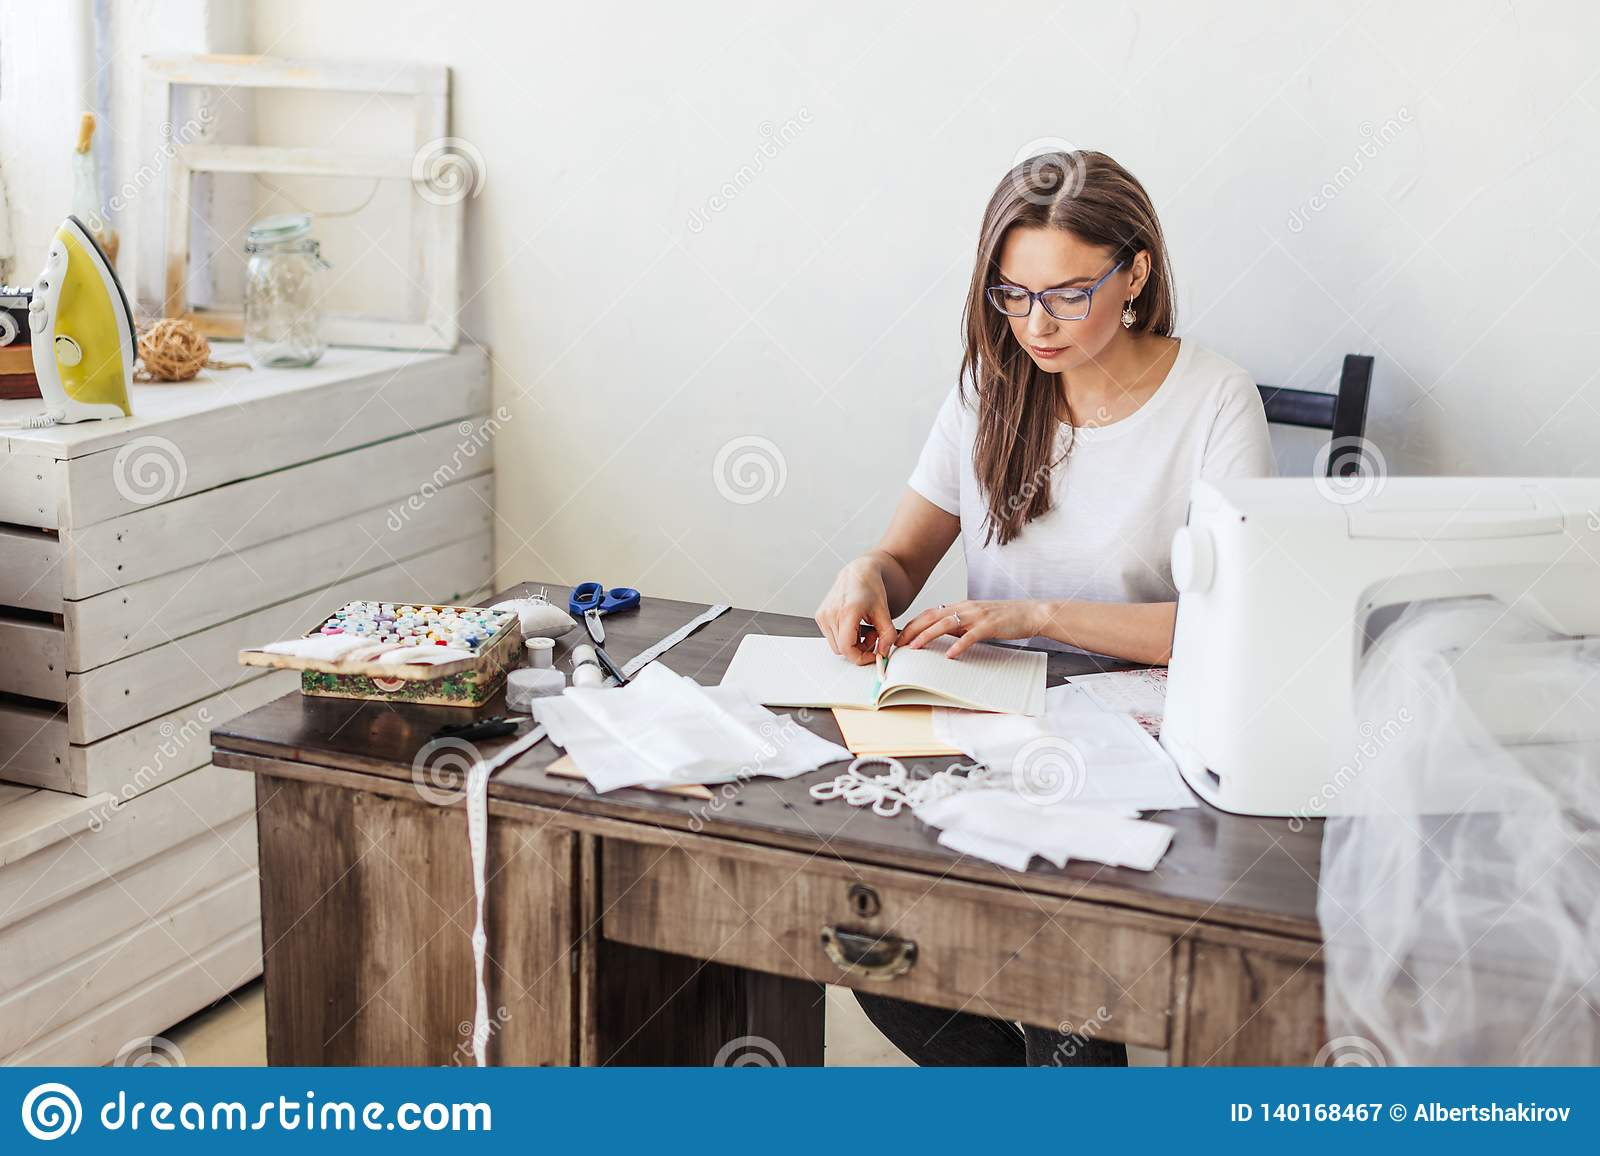 Fashion Designer At Work Talanted Dressmaker Drawing Sketch At Her Workspace Stock Image Image Of Caucasian Atelier 140168467